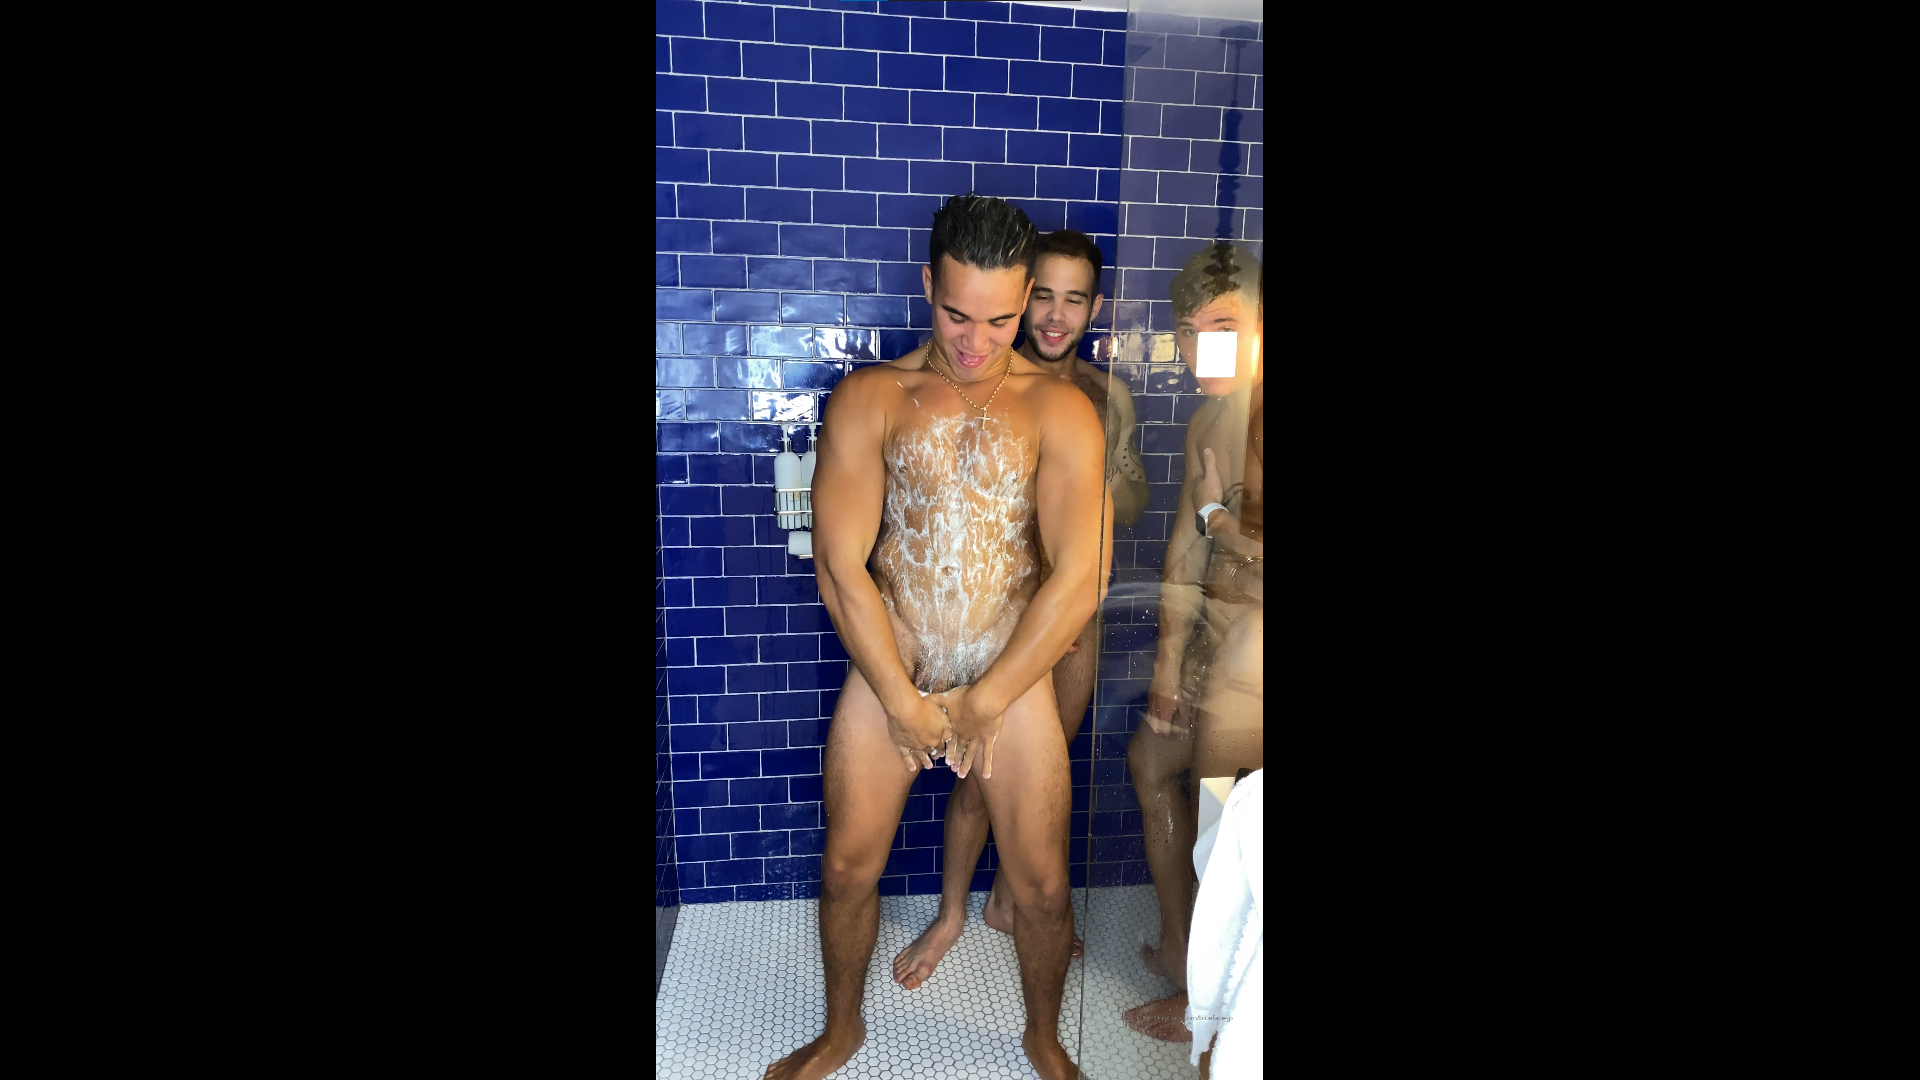 Having a shower with my mates - Blueface-jp